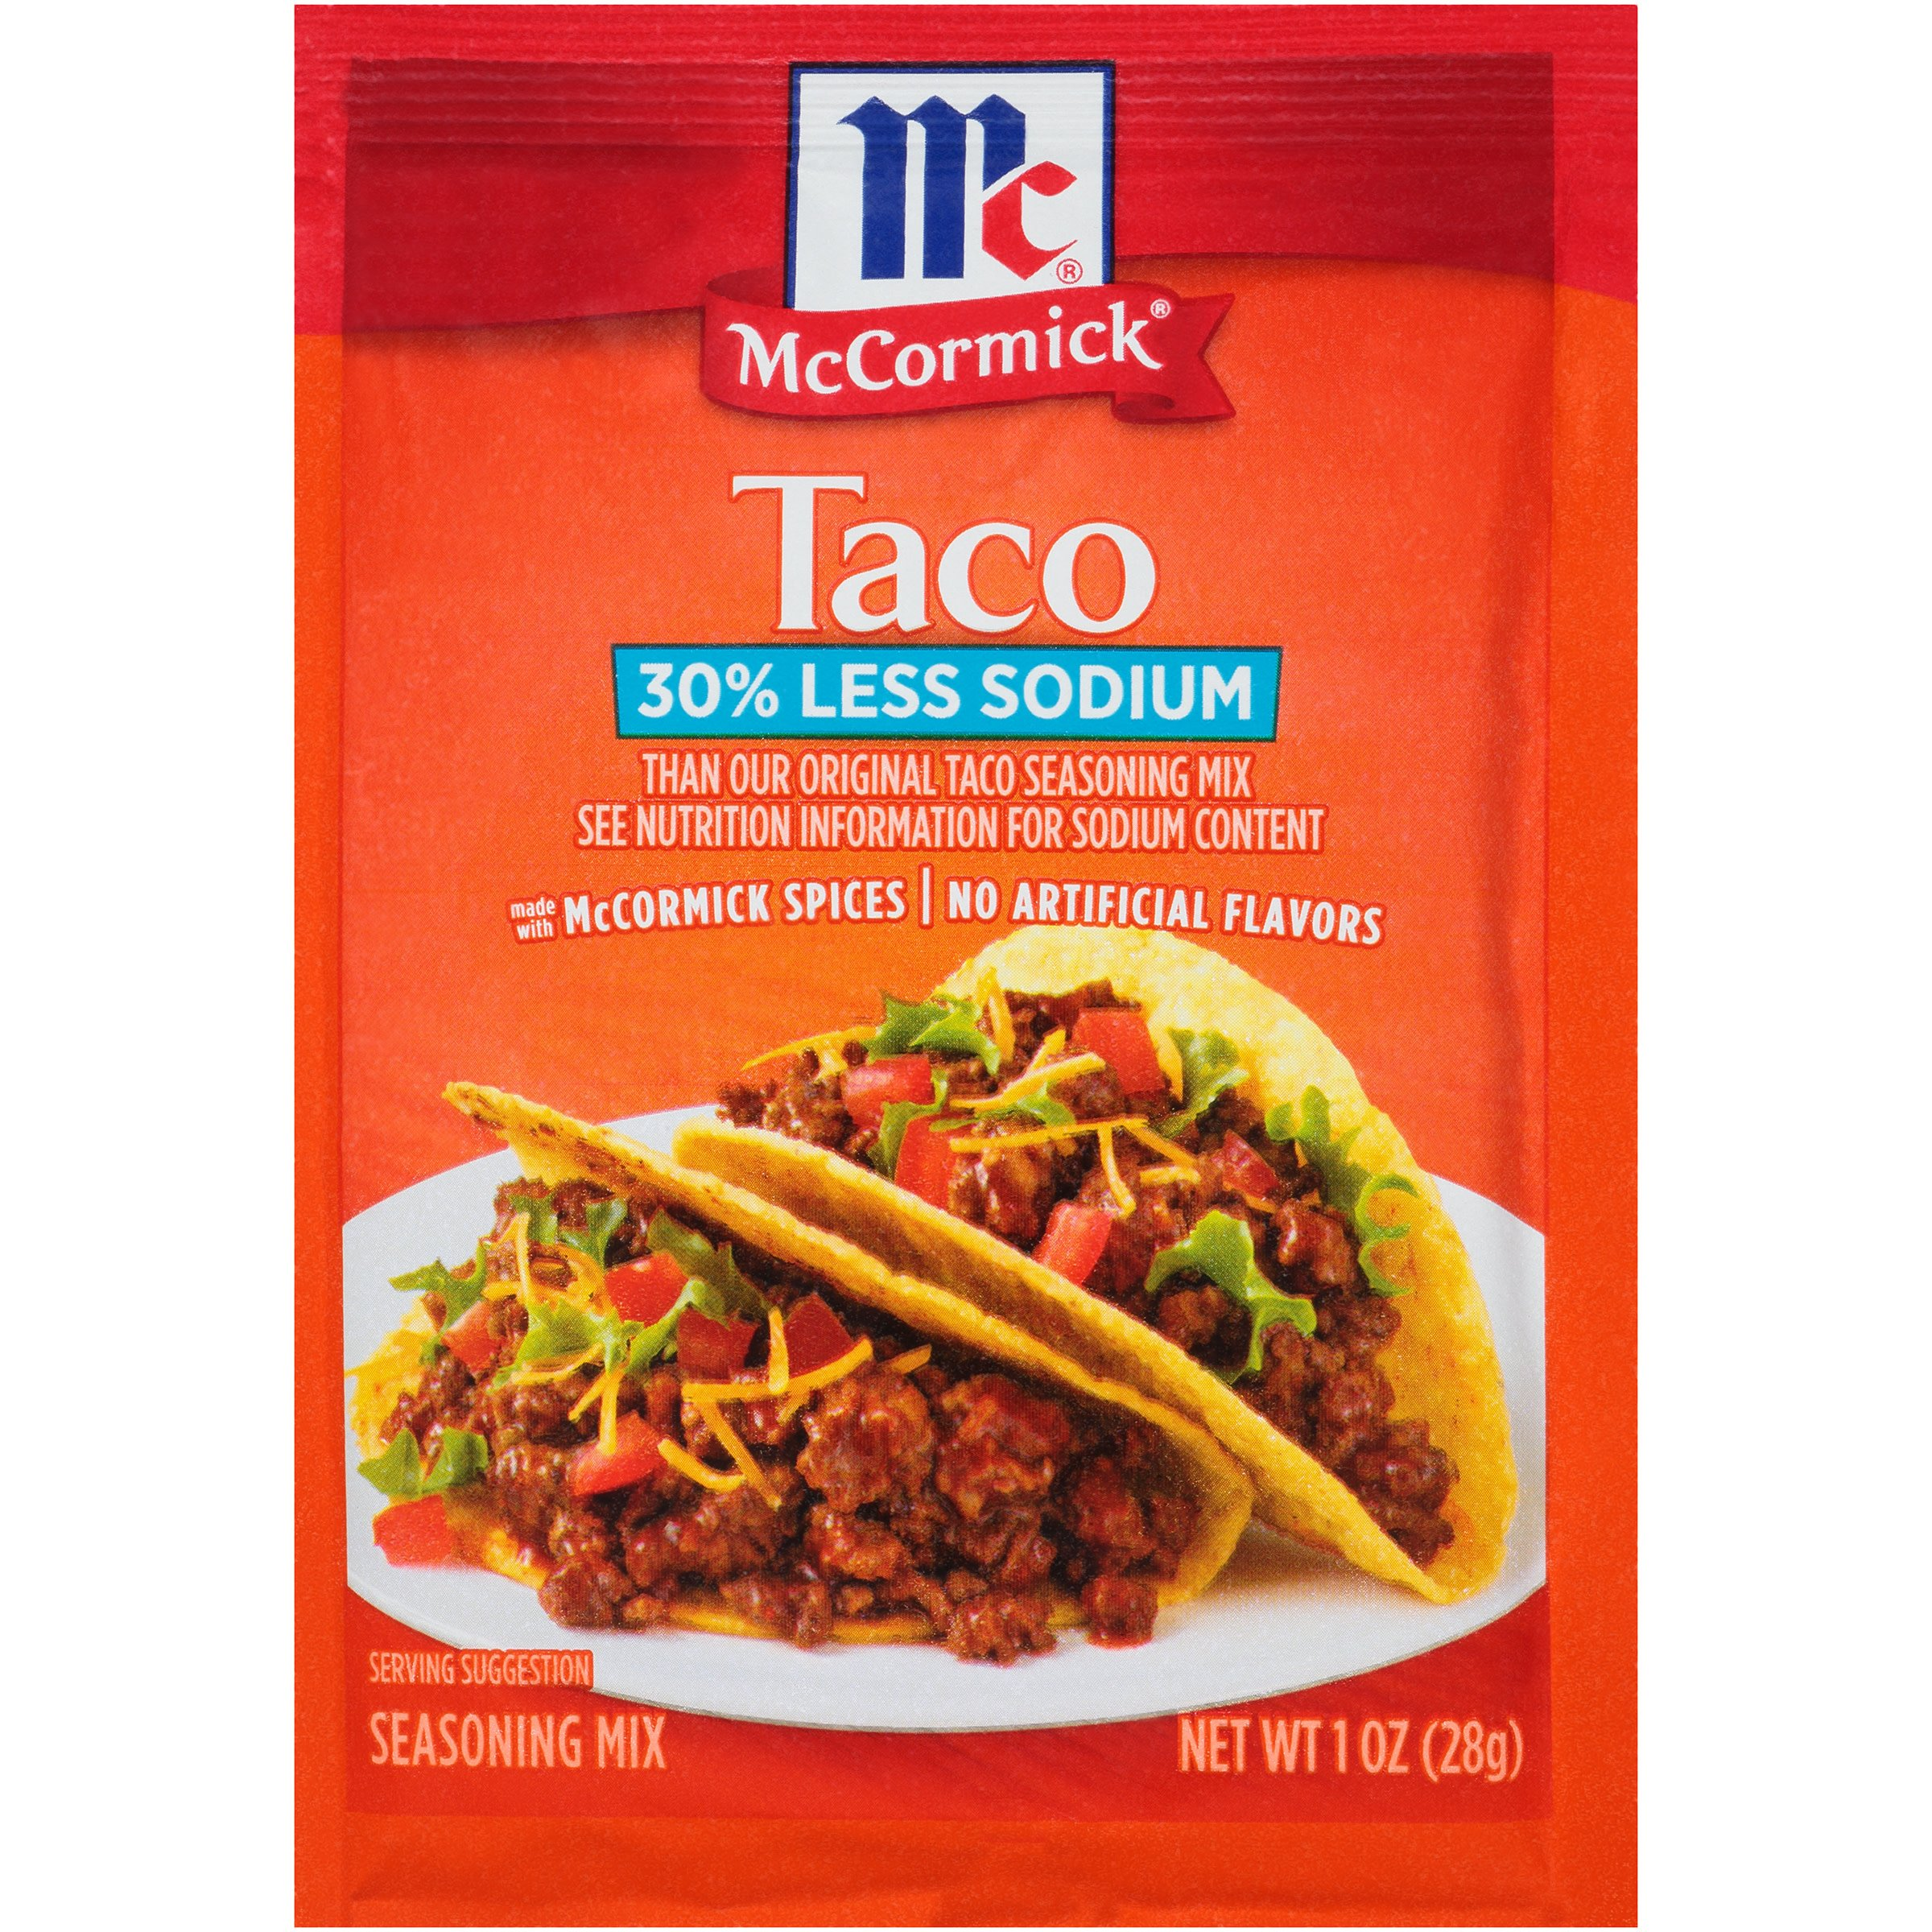 Mccormick 30 Less Sodium Taco Seasoning Mix Shop Spice Mixes At H E B